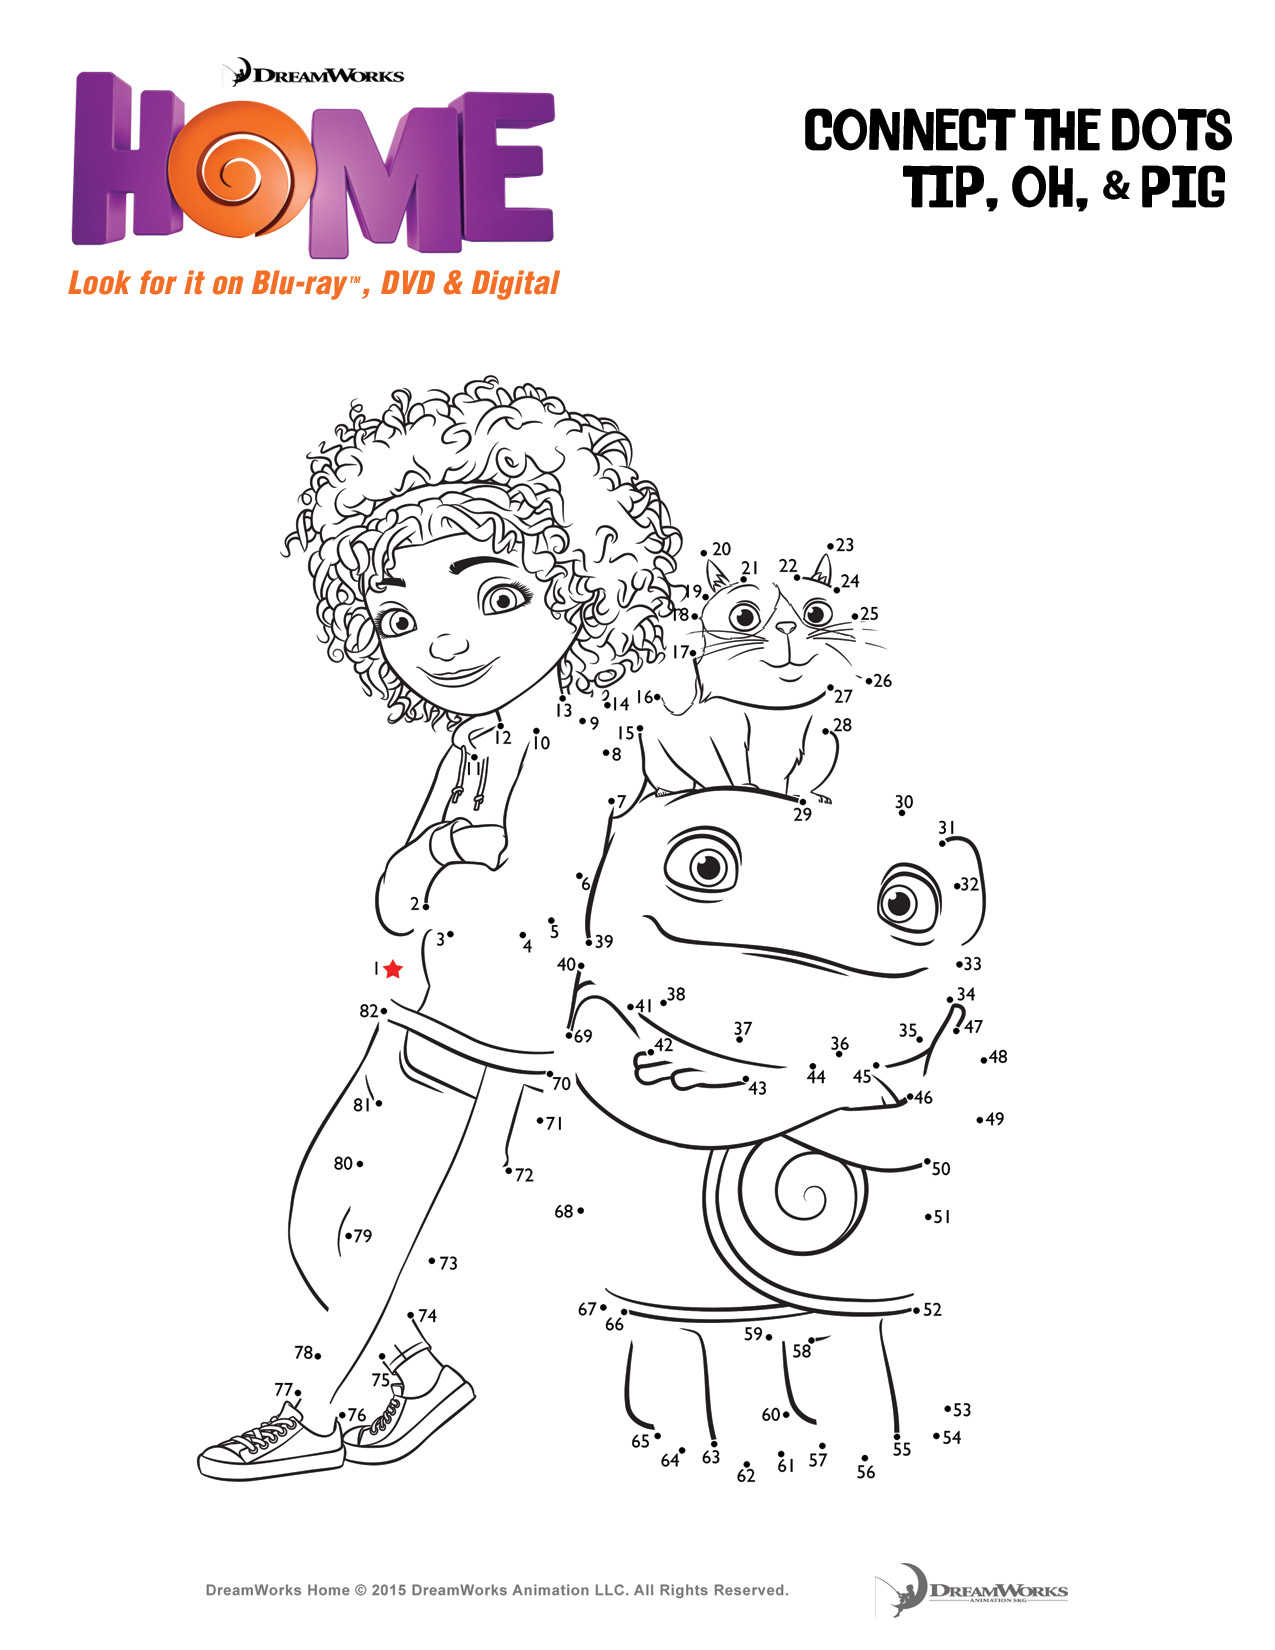 Fun Activity Pages For DreamWorks Animations Home HomeInsiders